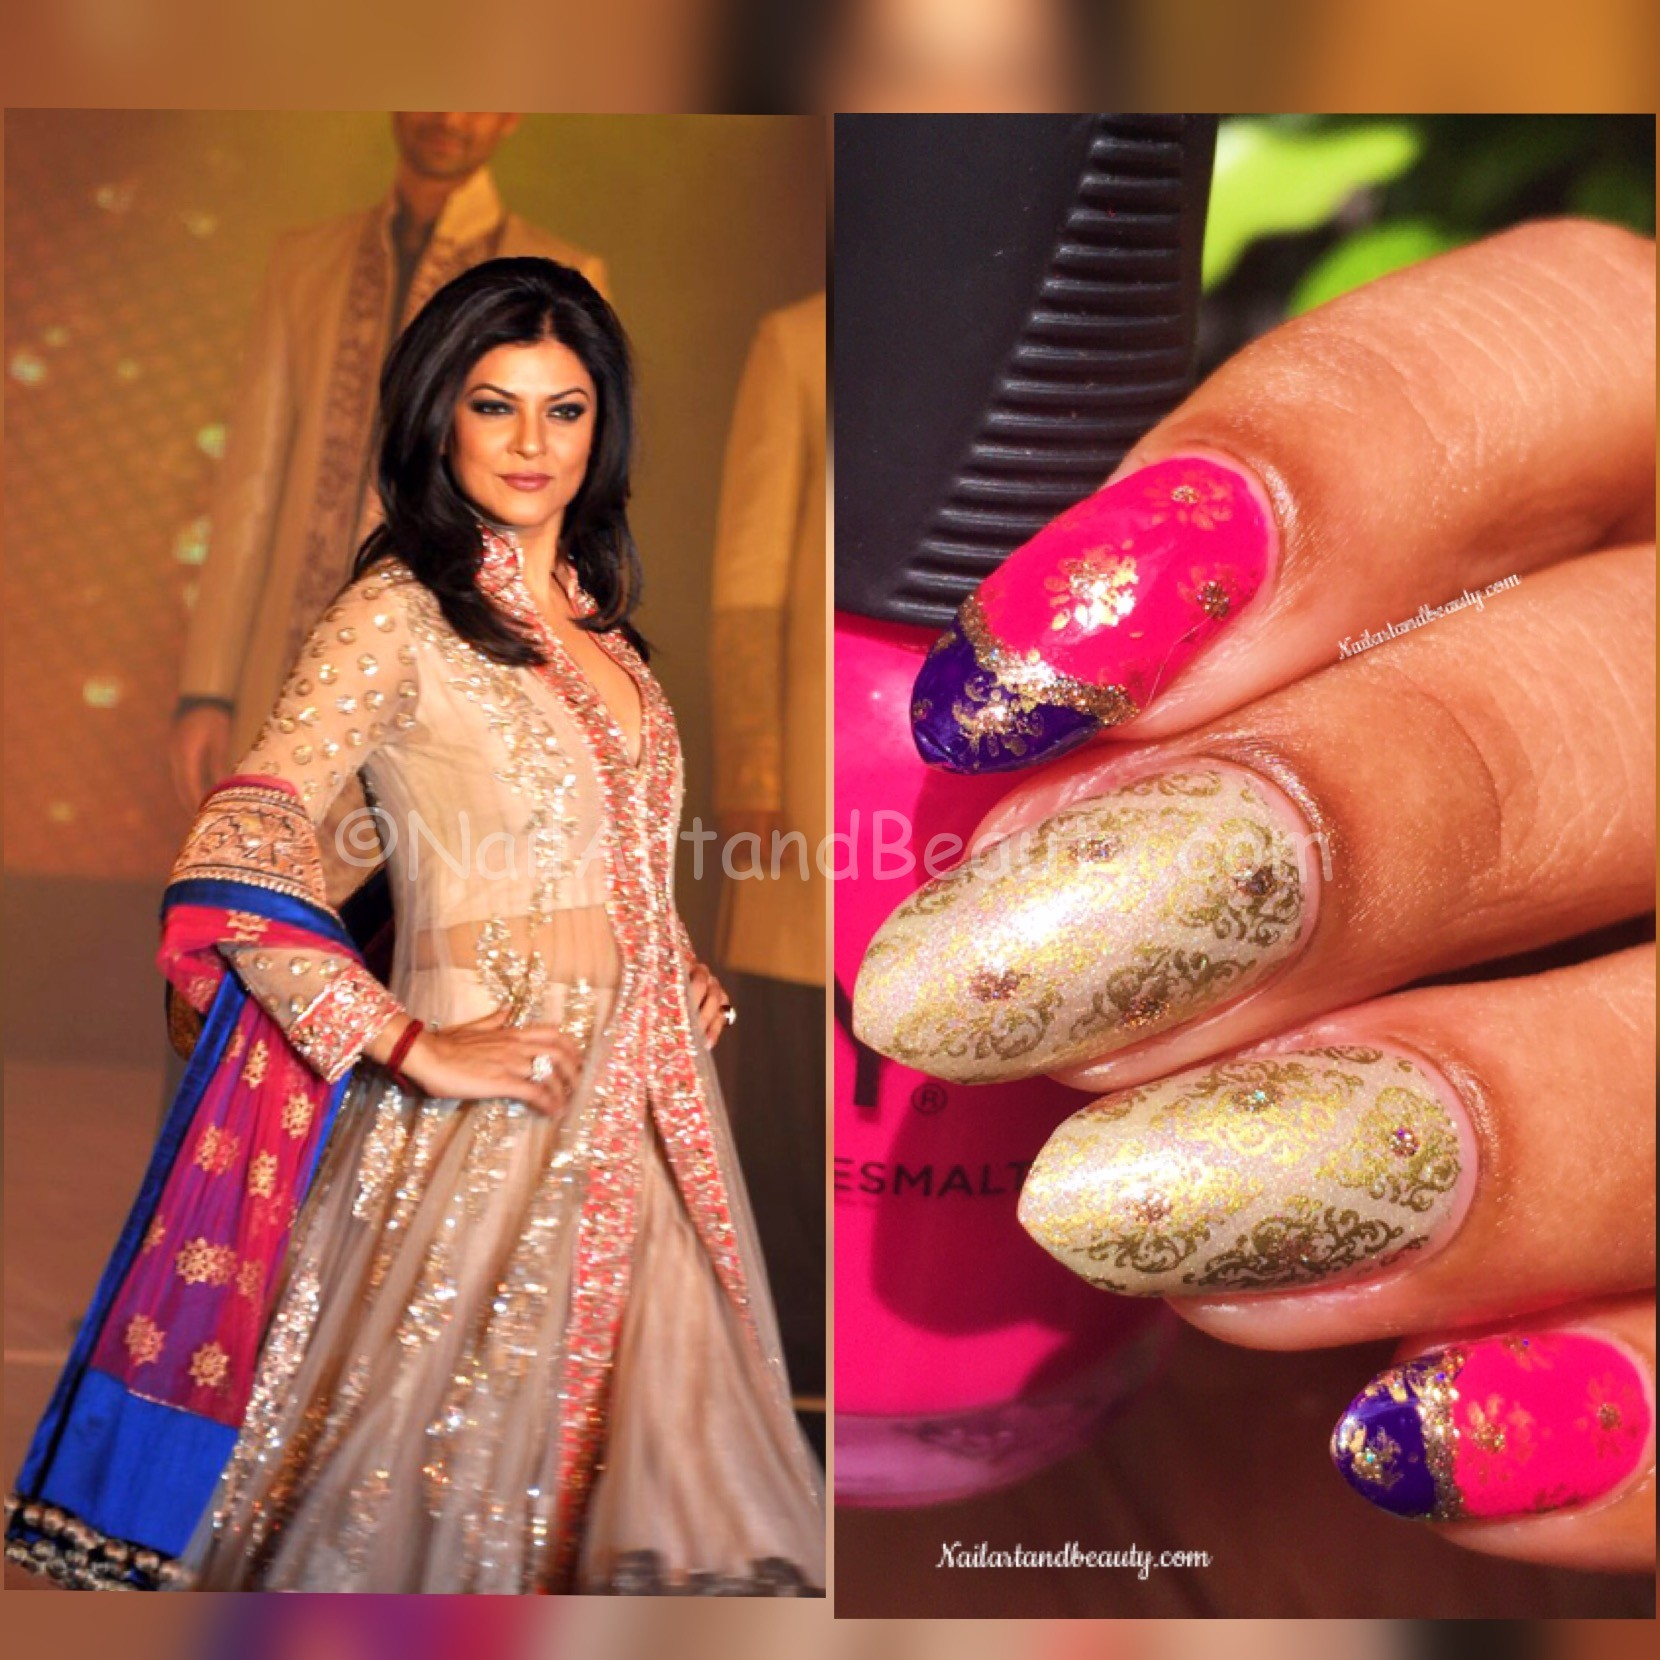 Nail Art Inspired by Sushmita Sen's Dress